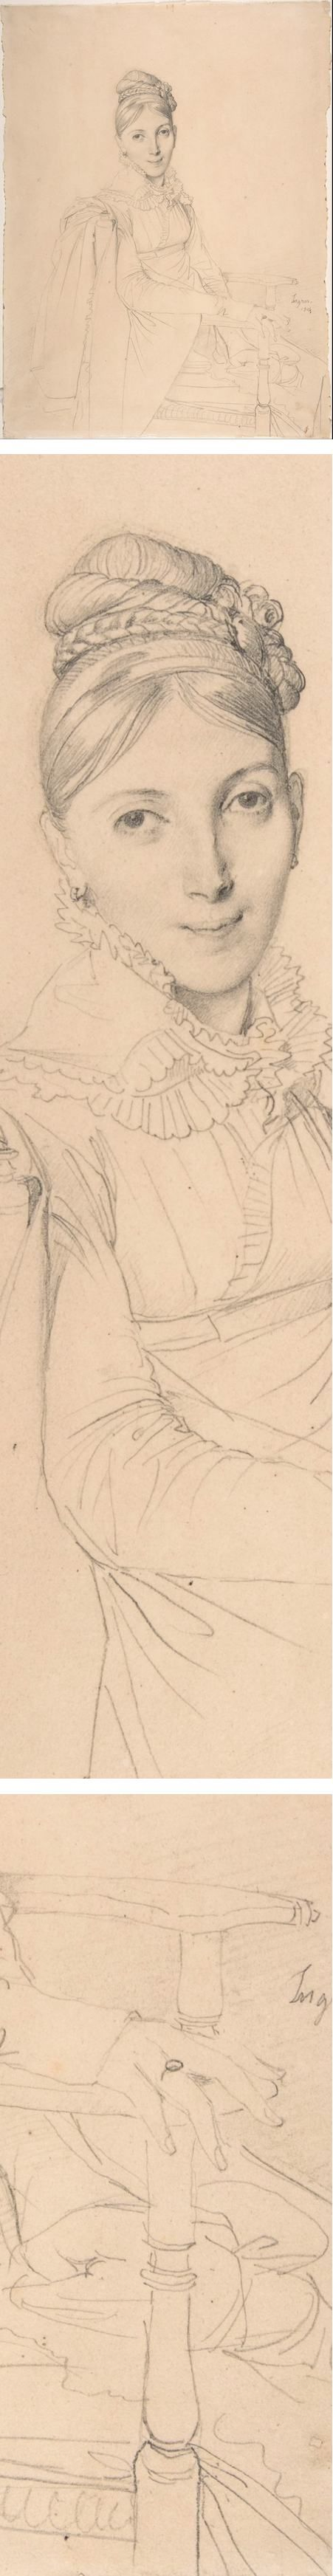 Eye Candy for Today: Ingres pencil portrait